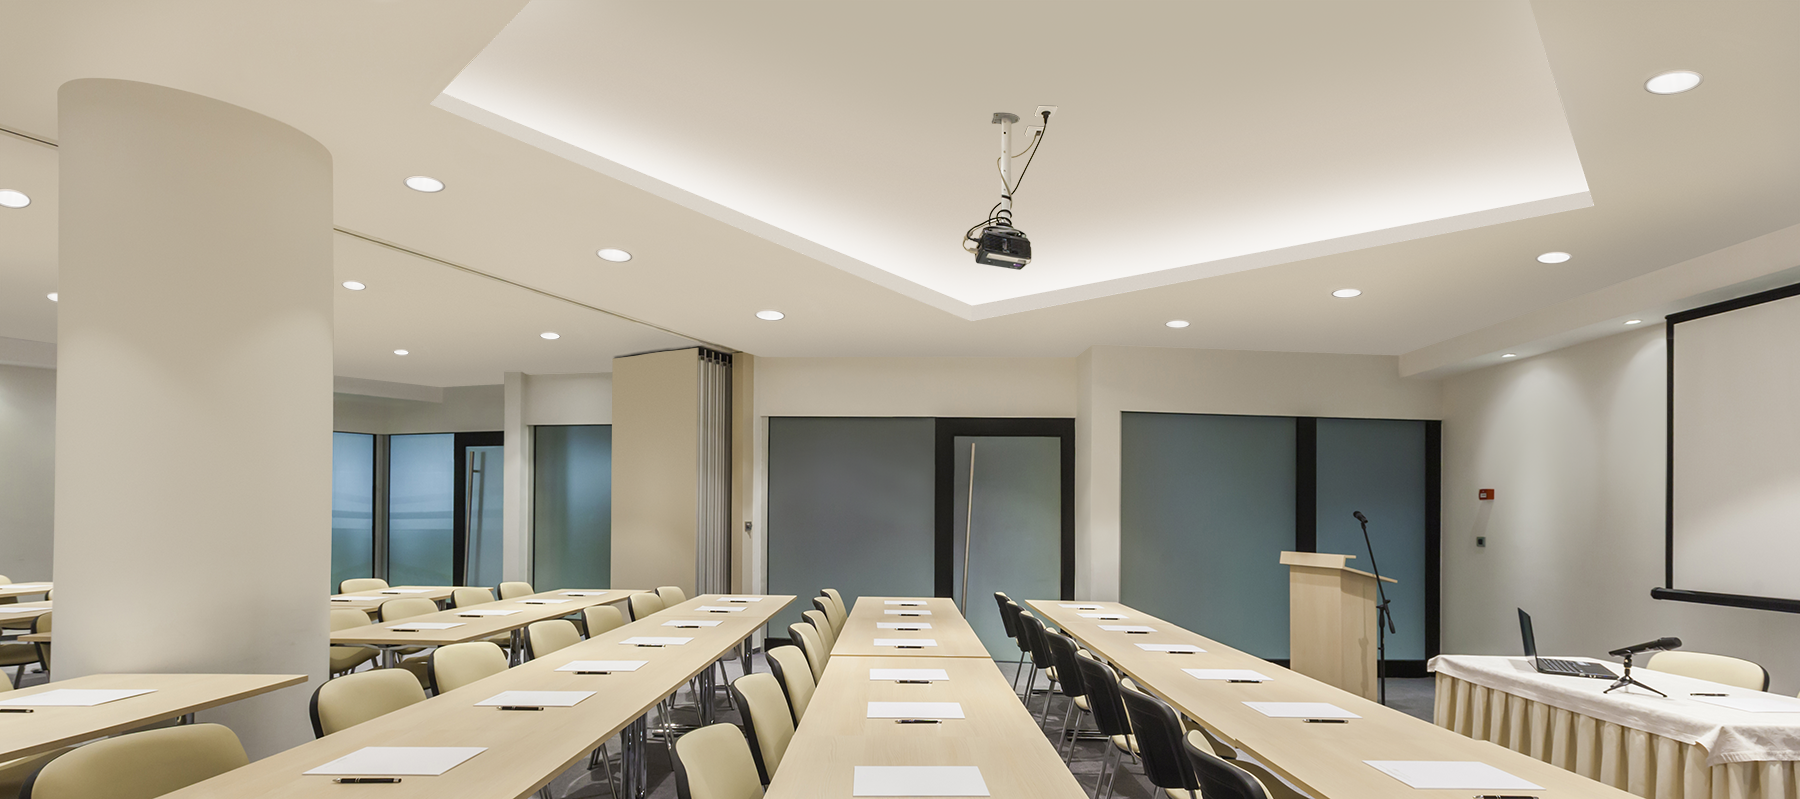 focal point introduces a petite fixed cove lighting solution with